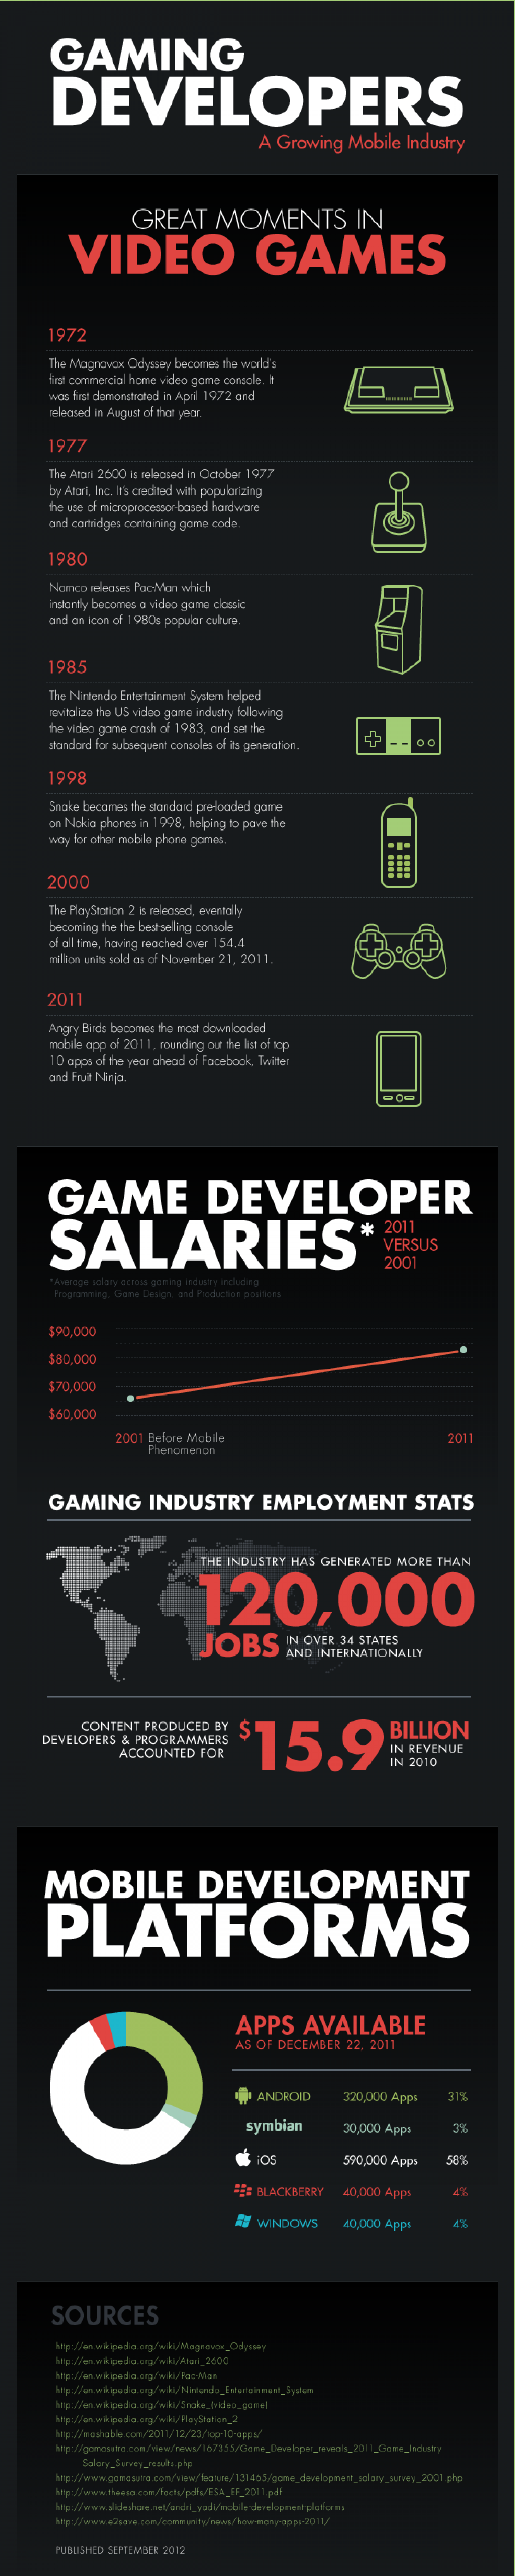 Great Moments in Video Games - Mobile Gaming Infographic